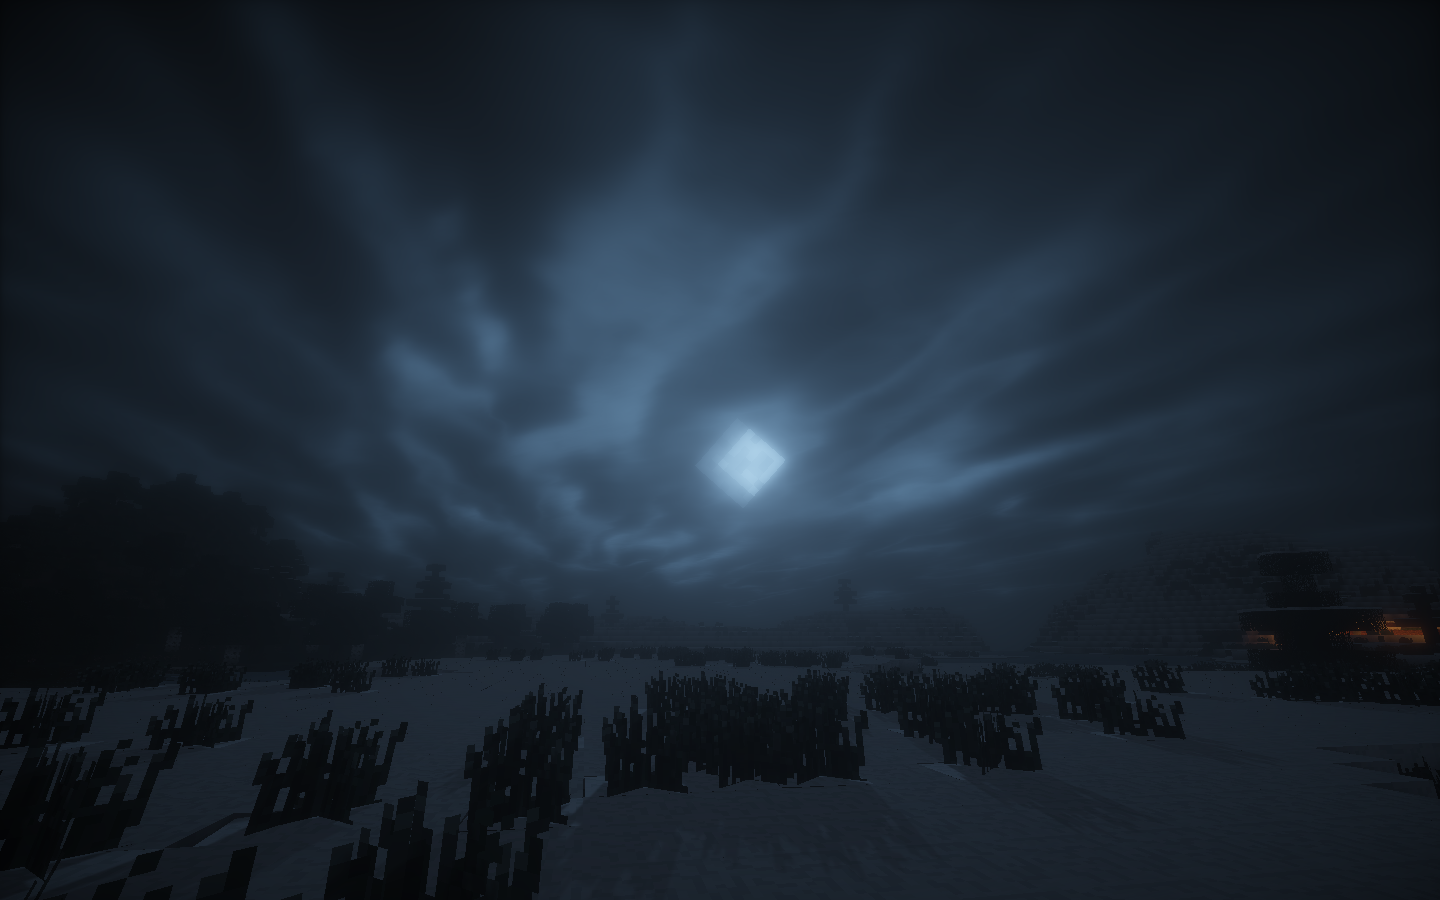 Must see Wallpaper Minecraft Night - mmmm_shaders_by_grace_k-d8kum1f  Pic_74784.png